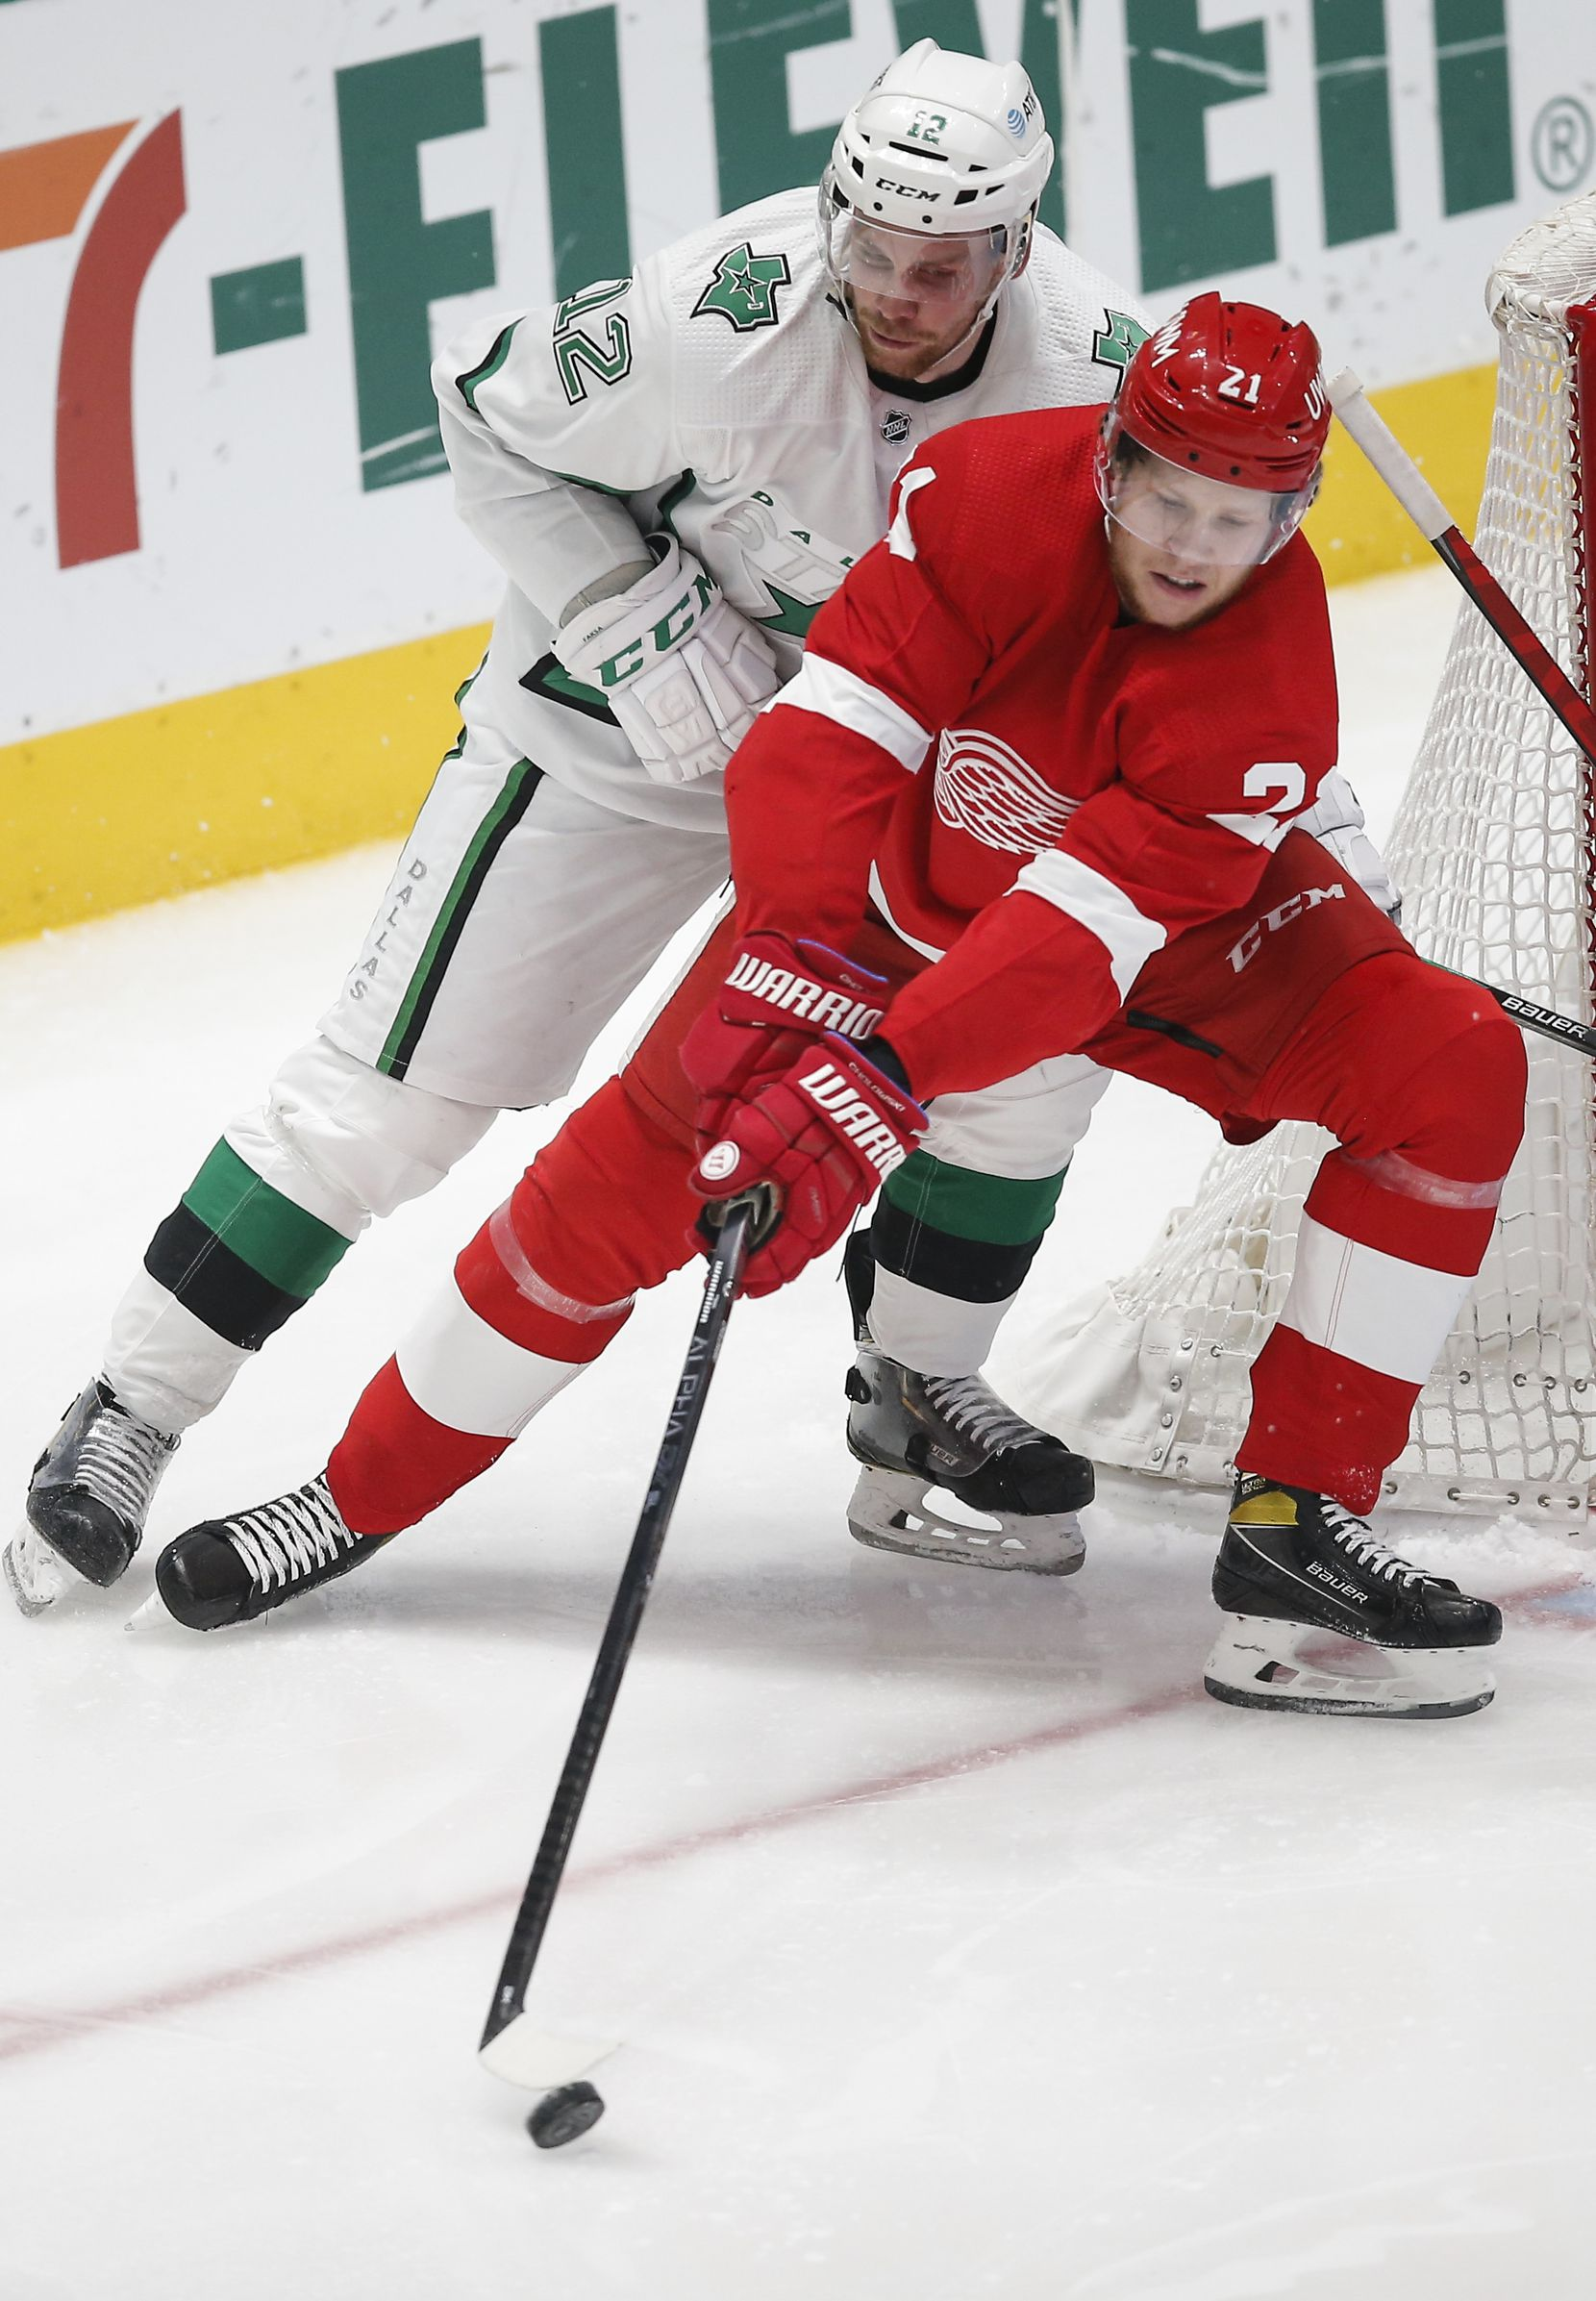 Dallas Stars forward Radek Faksa (12) and Detroit Red Wings defenseman Dennis Cholowski (21) battle for the puck during the second period of an NHL hockey game in Dallas, Monday, April 19, 2021. (Brandon Wade/Special Contributor)